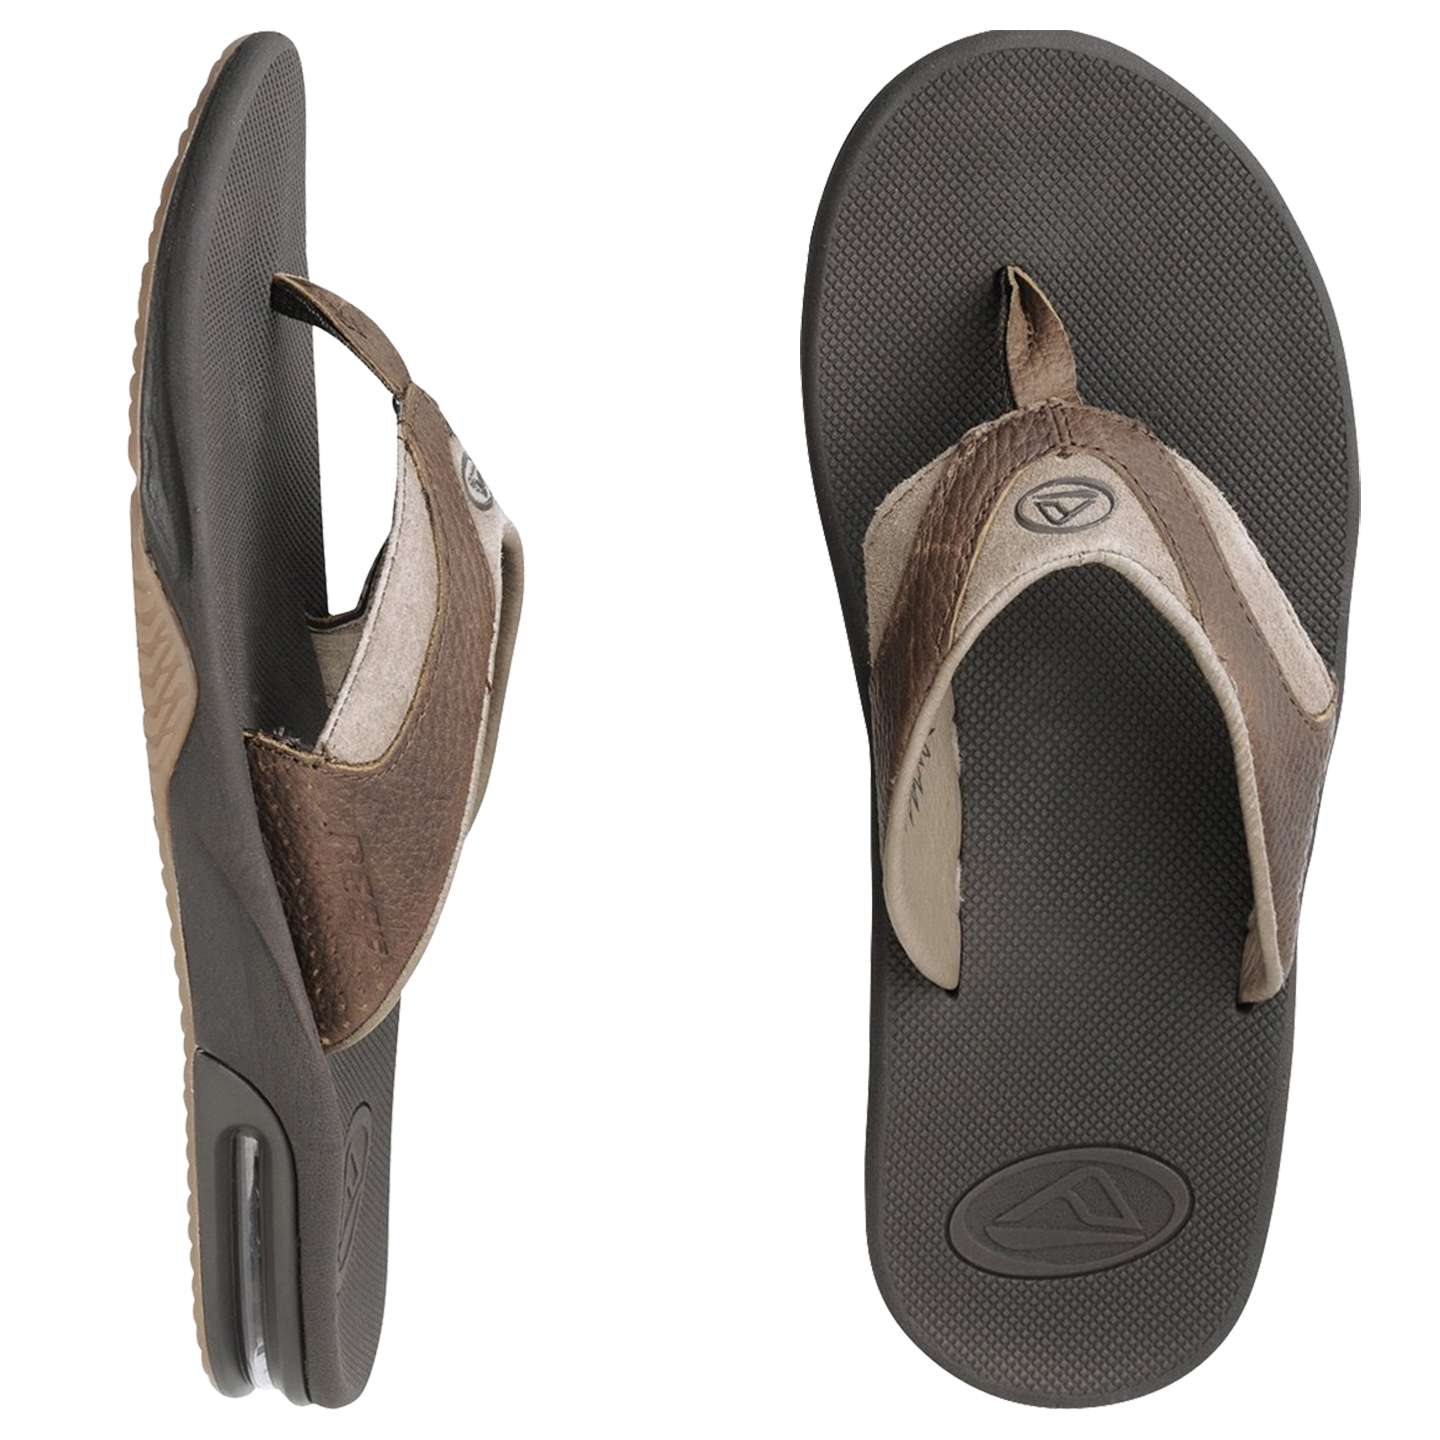 Sandals Leather Fanning Reef Reef Leather Sandals Fanning Reef XOPiTwulZk